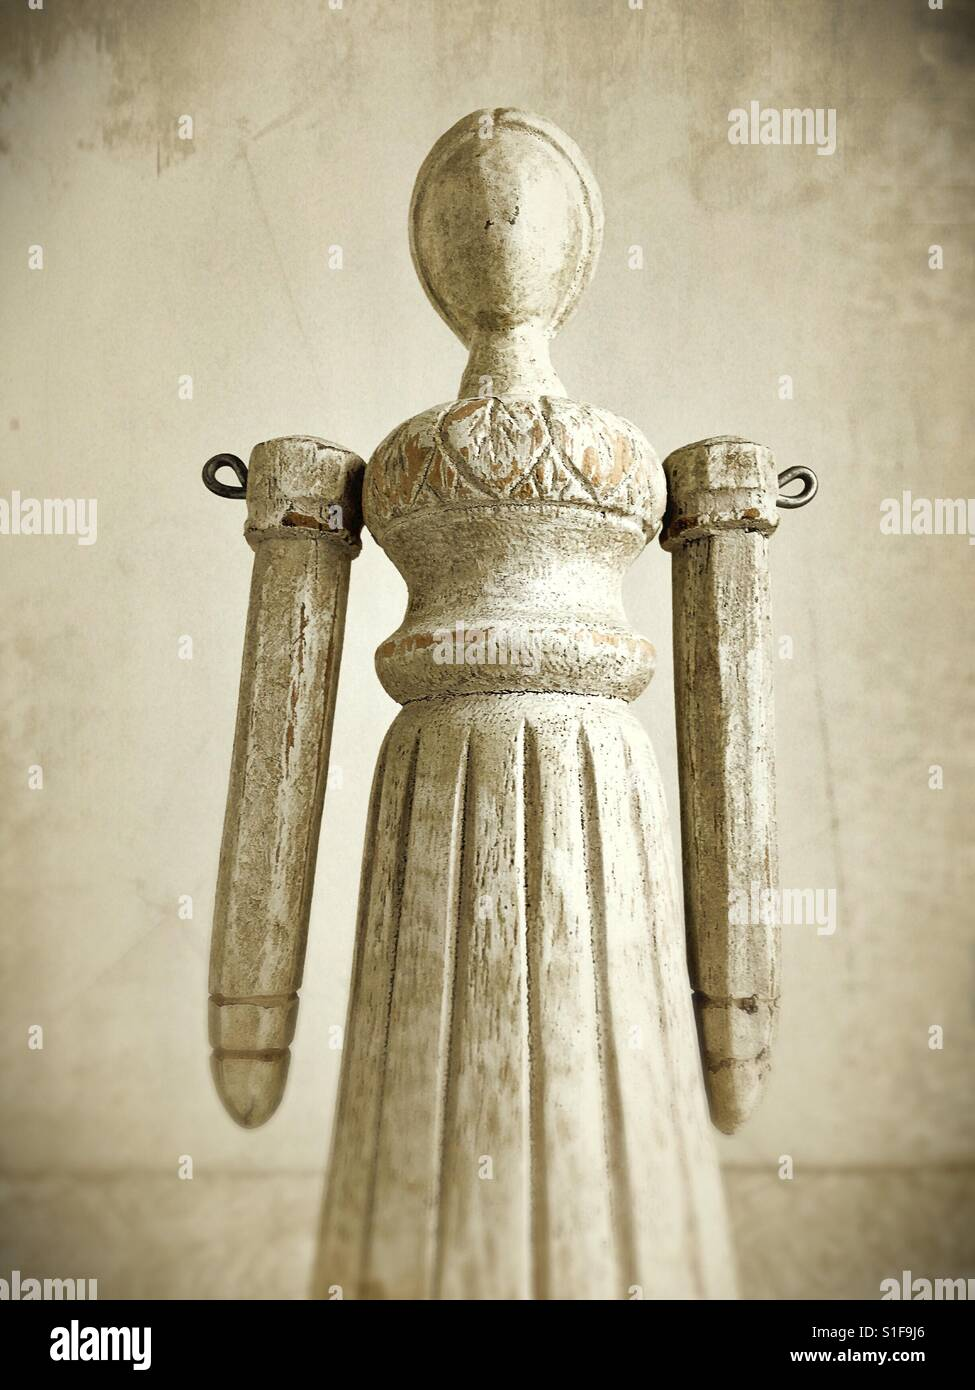 An old fashioned looking female wooden figure. Stock Photo